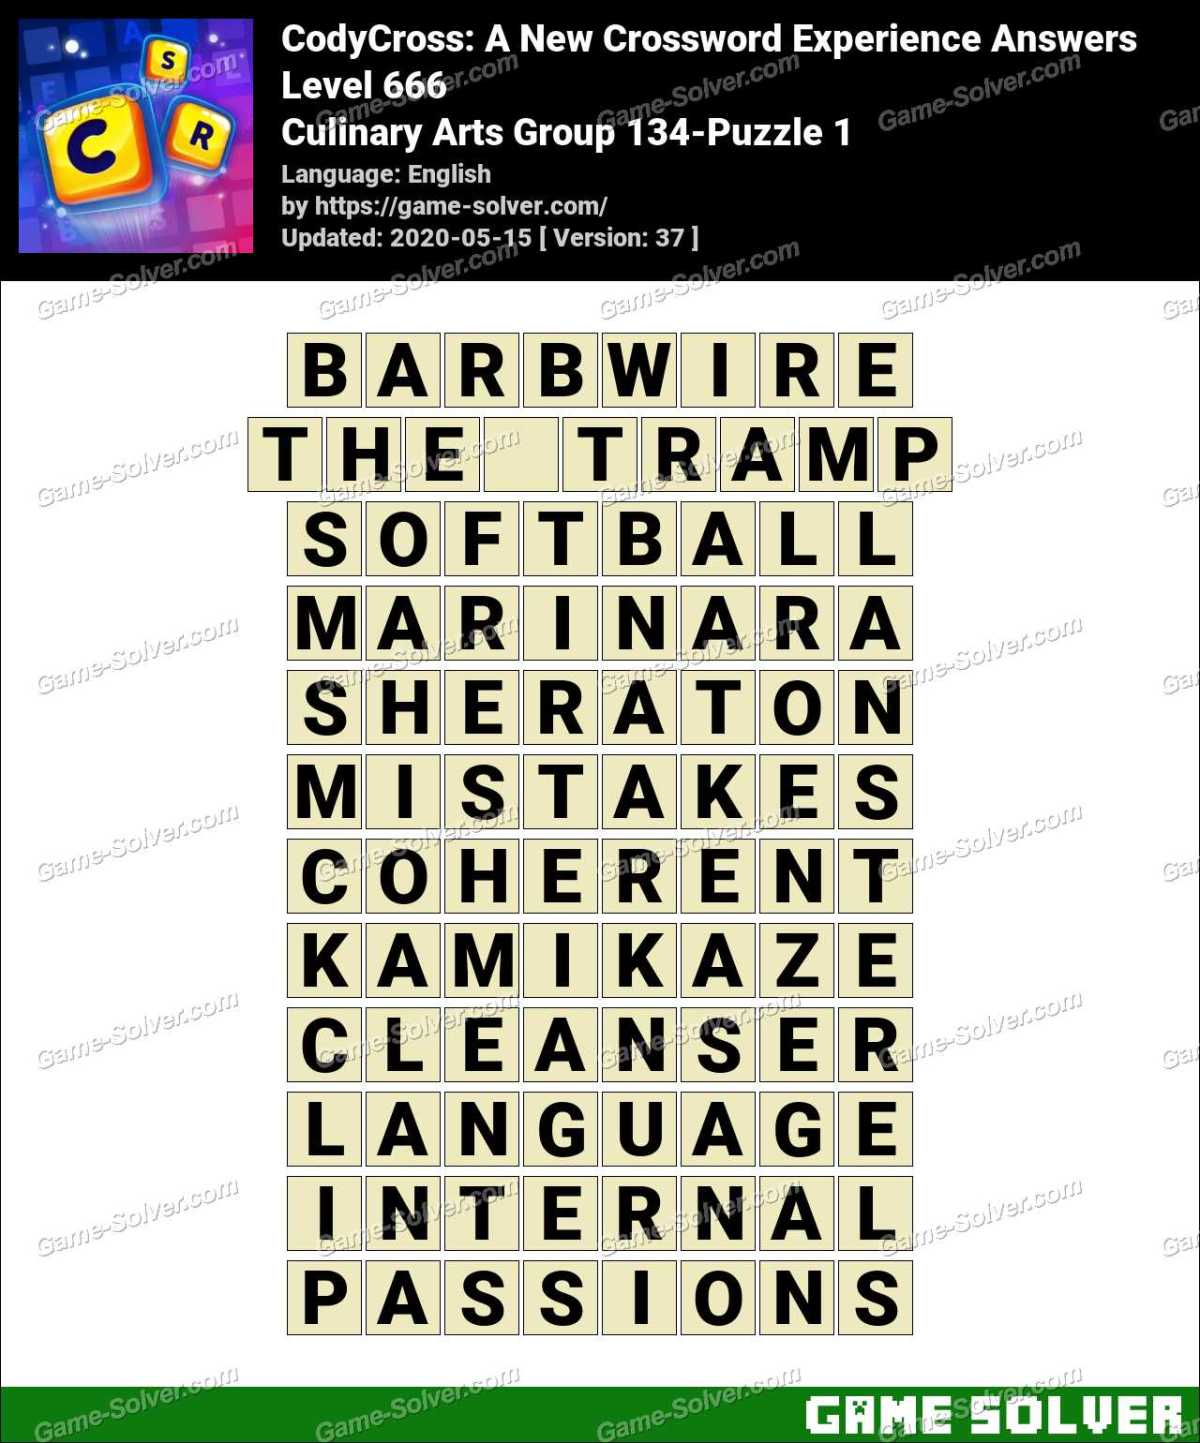 CodyCross Culinary Arts Group 134-Puzzle 1 Answers